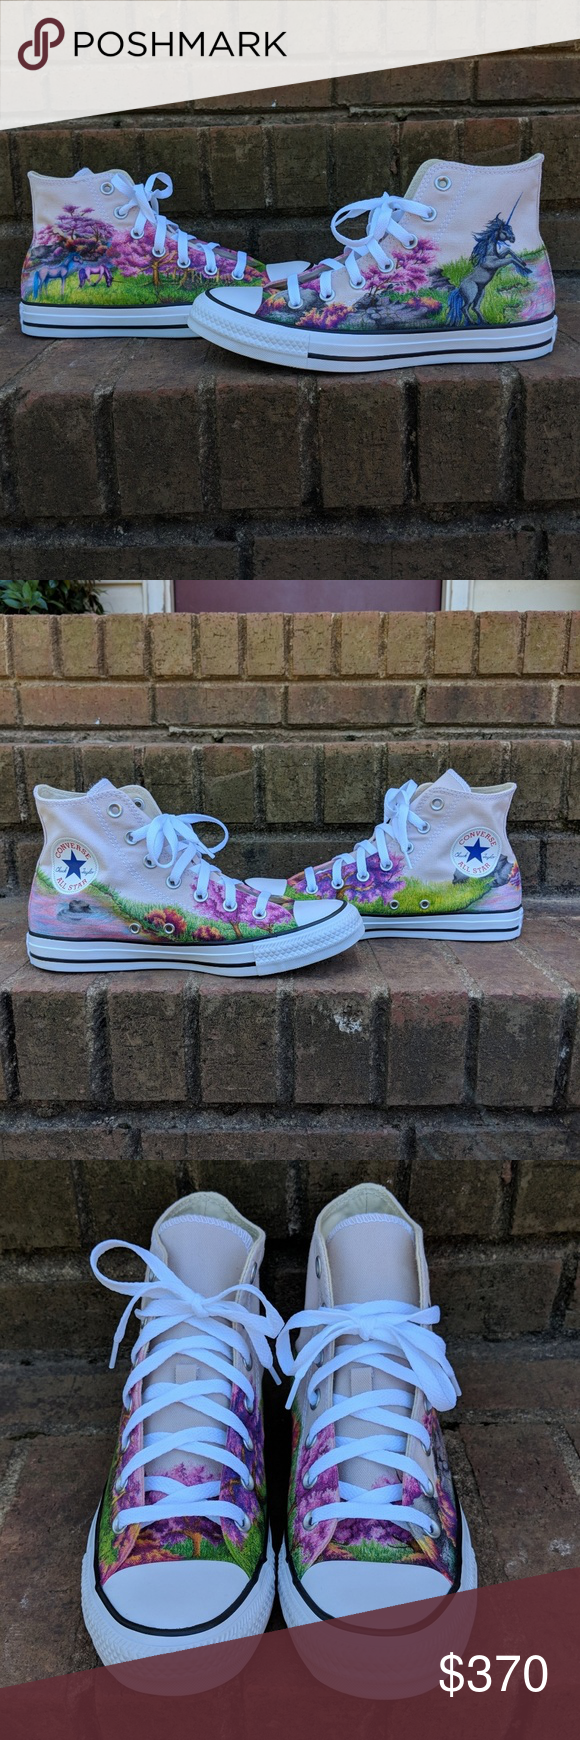 139bdc61134 Spotted while shopping on Poshmark  🦄HP Unicorn Original Art Converse  Sneakers W8!  poshmark  fashion  shopping  style  Converse  Shoes